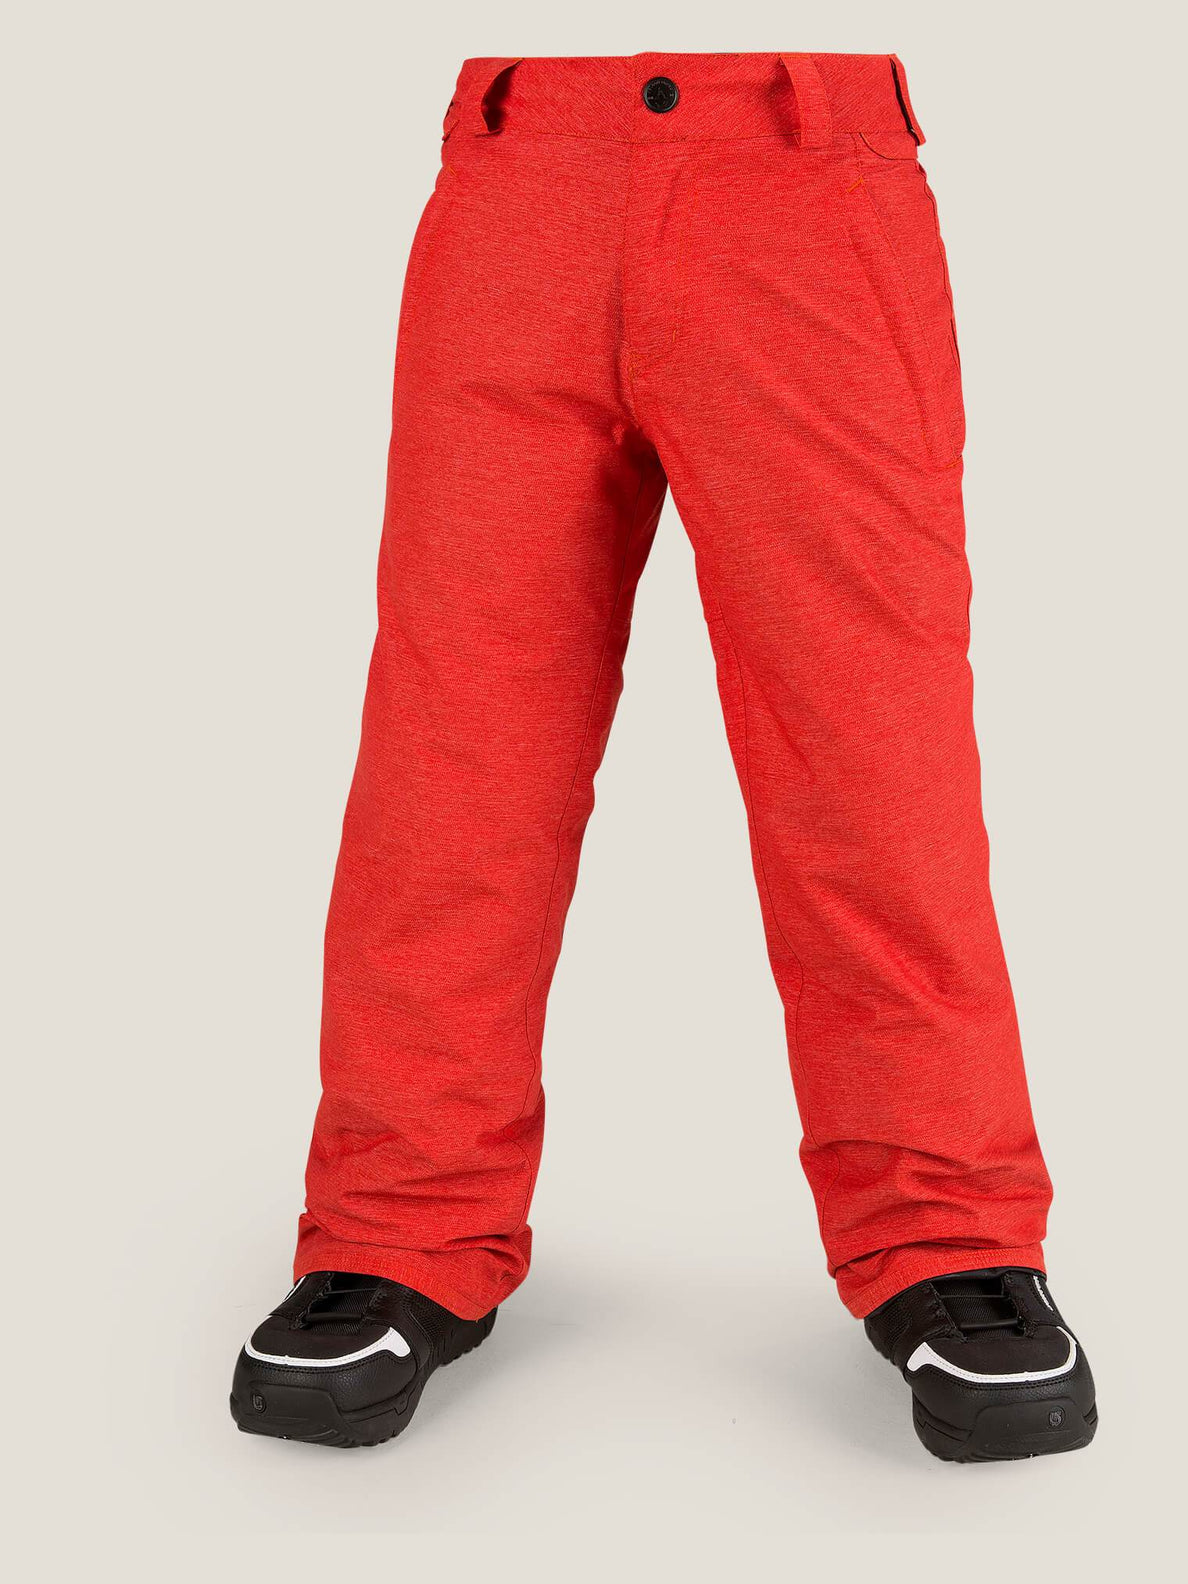 Explorer Insulated Pant In Fire Red, Front View